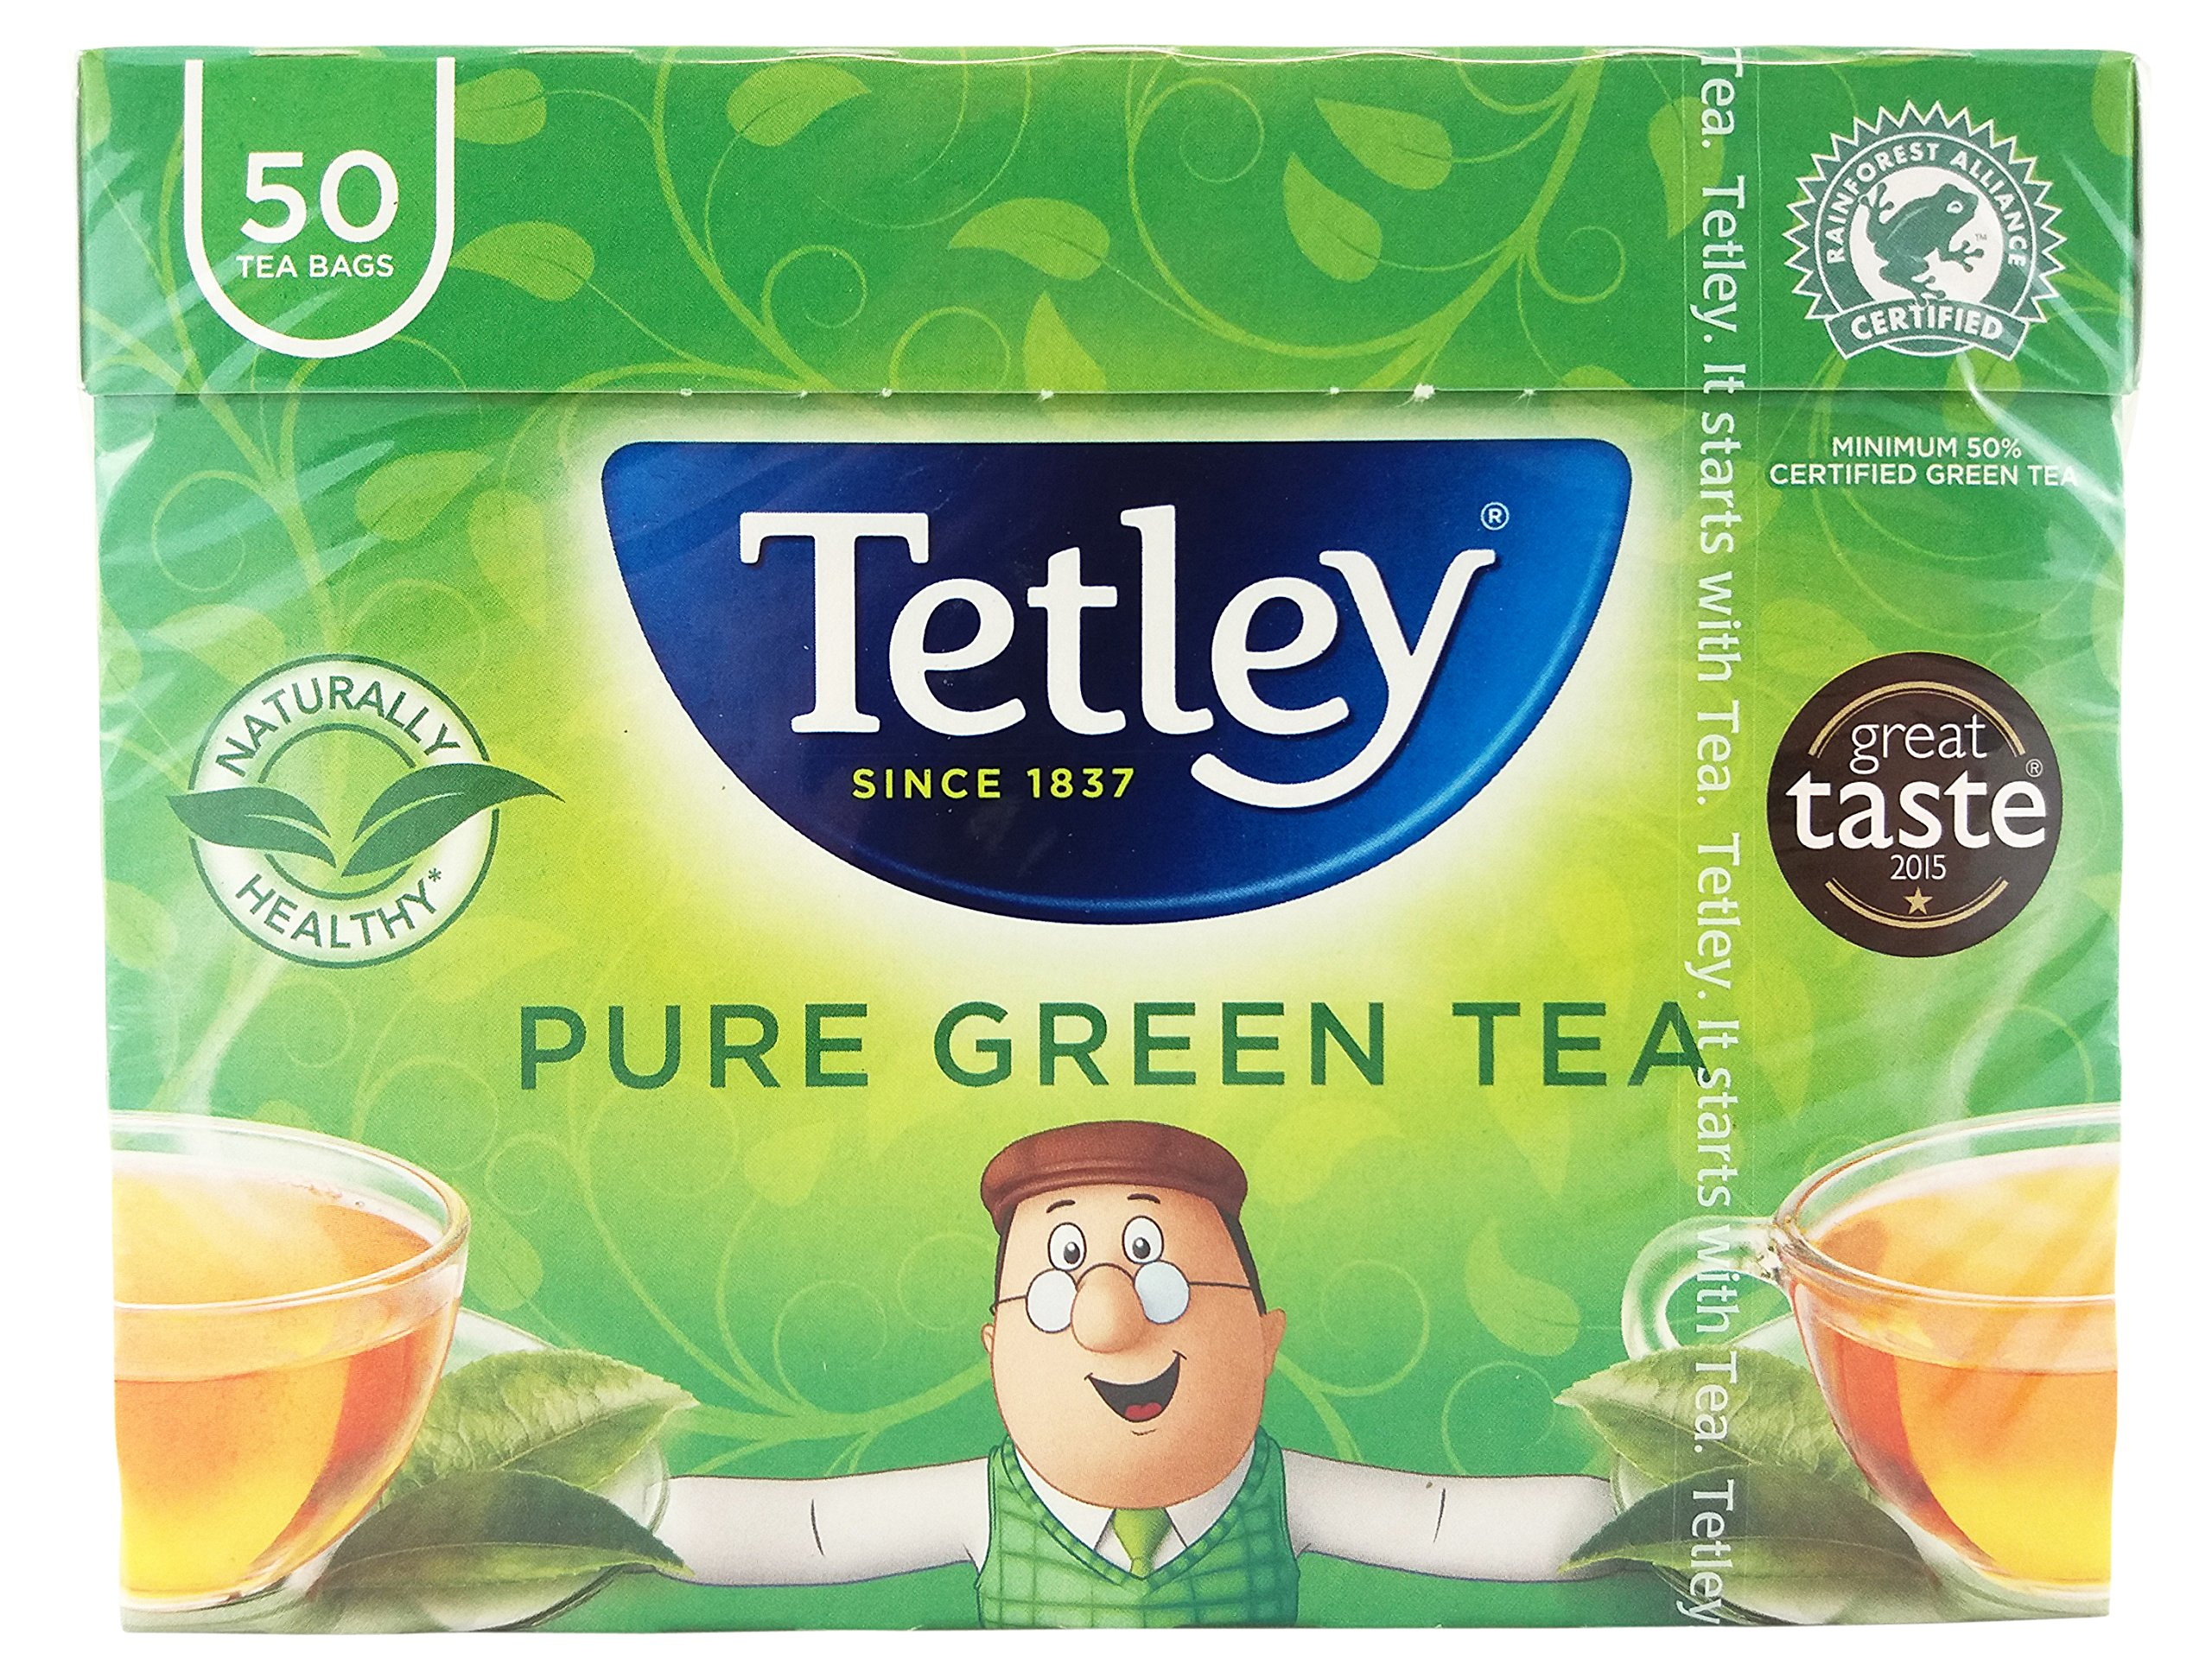 Tetley green tea (rainforest alliance) (green tea) (50 bags) (brews in 1-3 minutes)